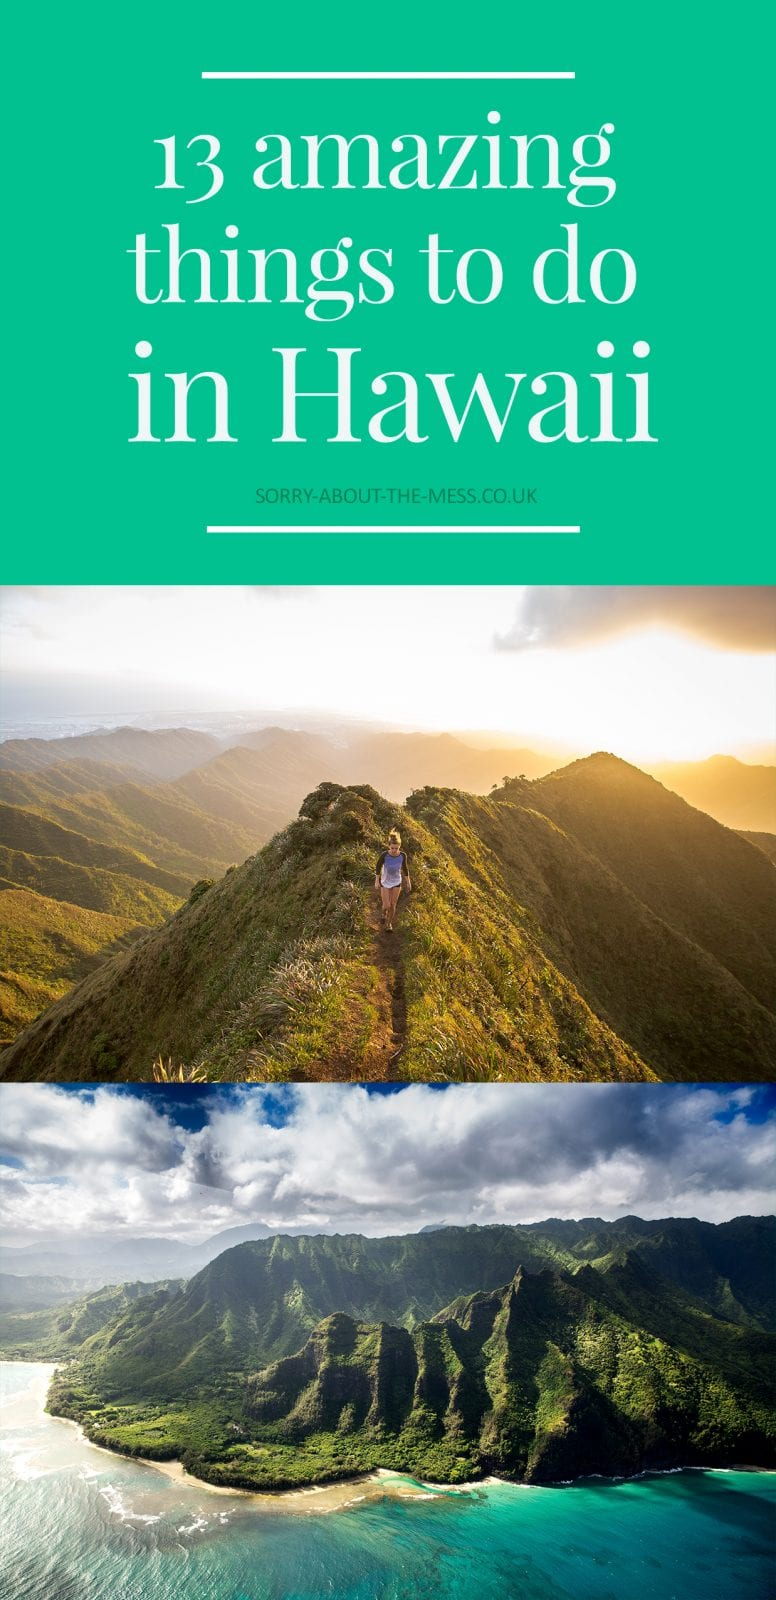 13 amazing things to do in Hawaii. From volcanoes, big waves, wildlife, and dramatic scenery, this is an excellent Hawaii bucket list.